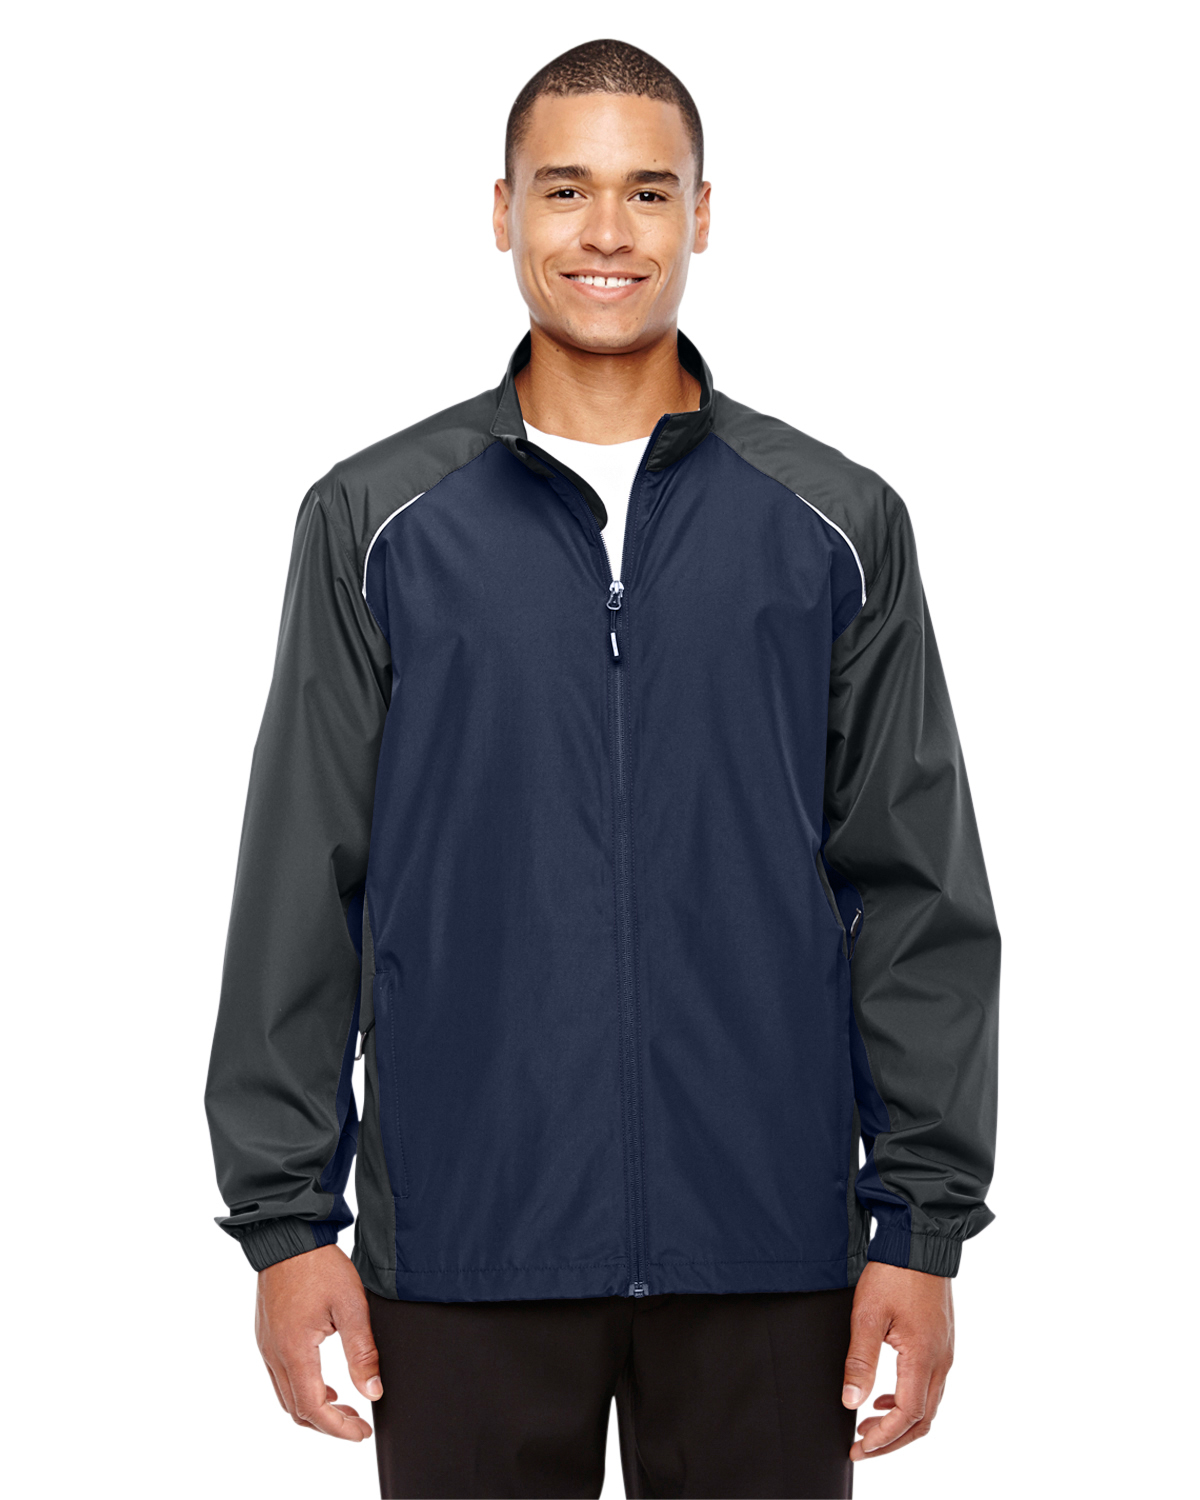 Ash City Core 365 88223 - Men's Stratus Colorblock Lightweight Jacket